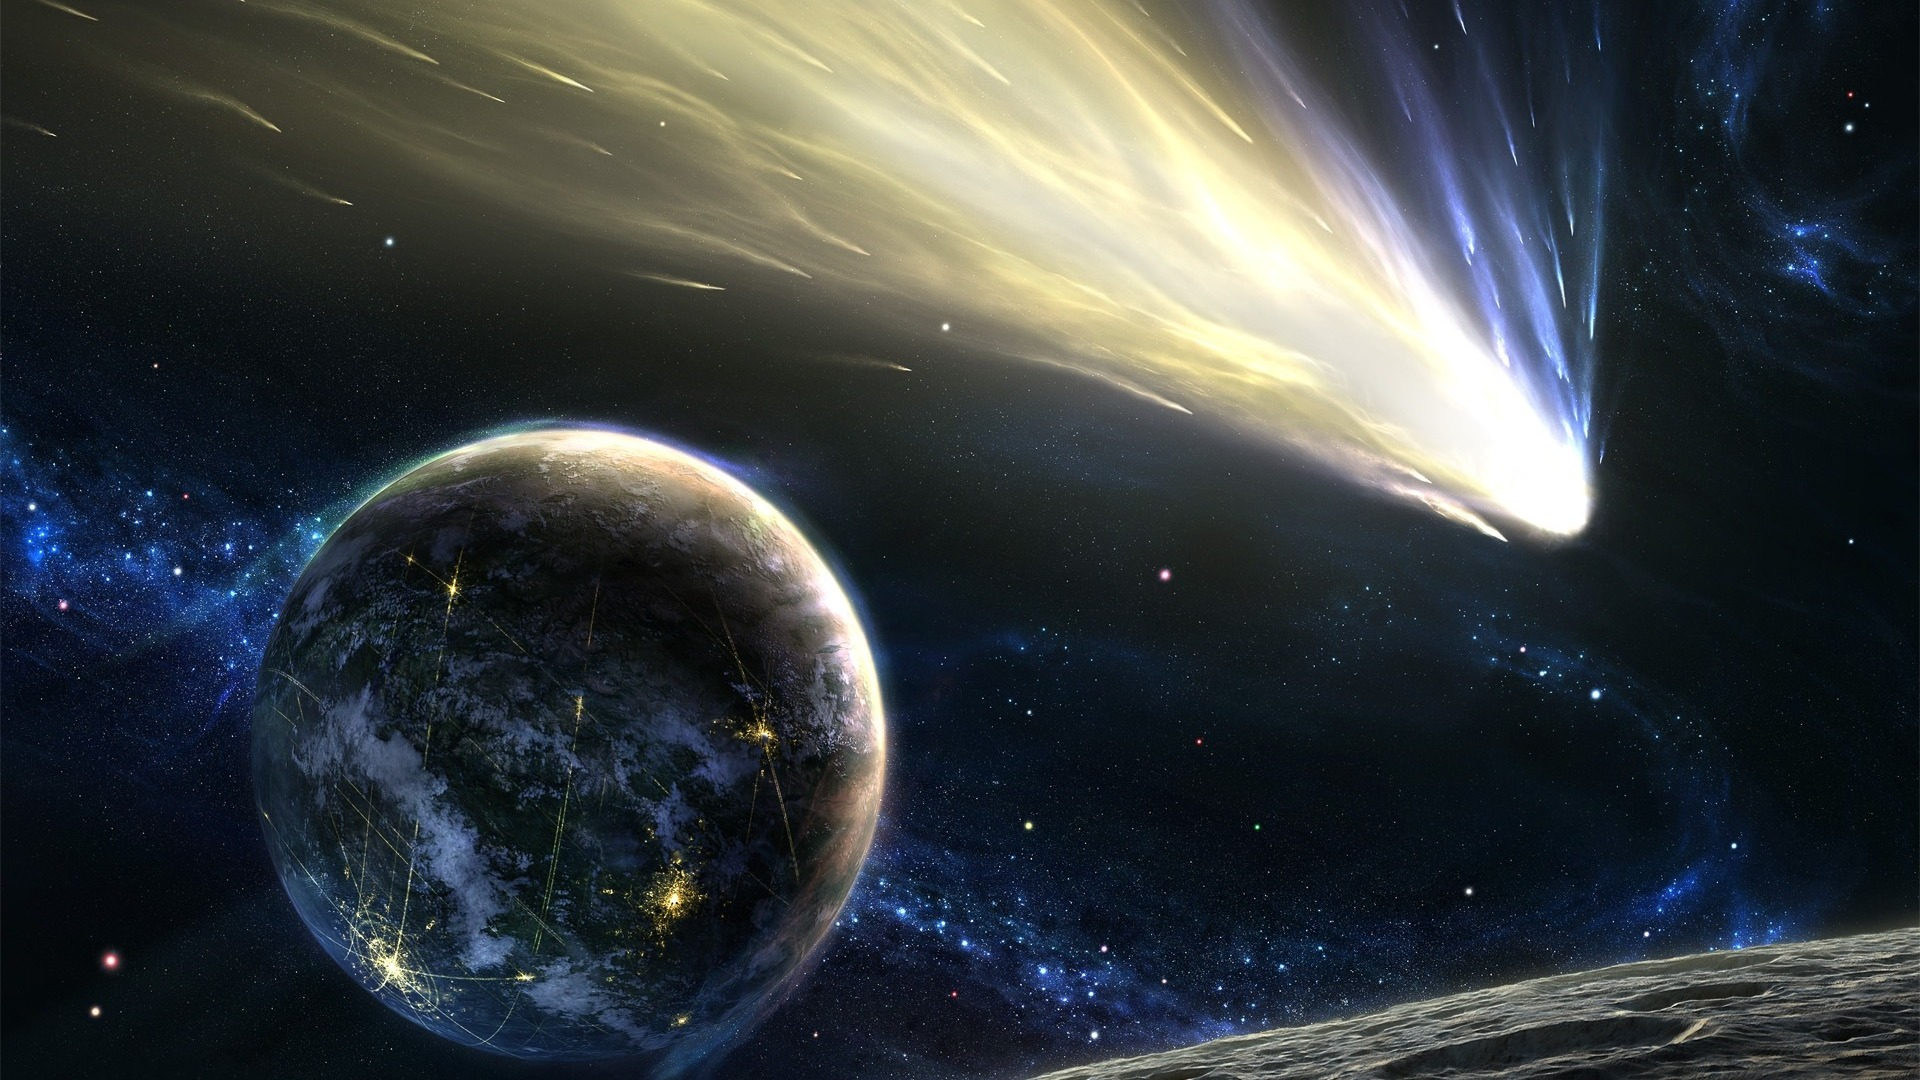 Space HD wallpaper 1920x1080 12   hebusorg   High Definition 1920x1080